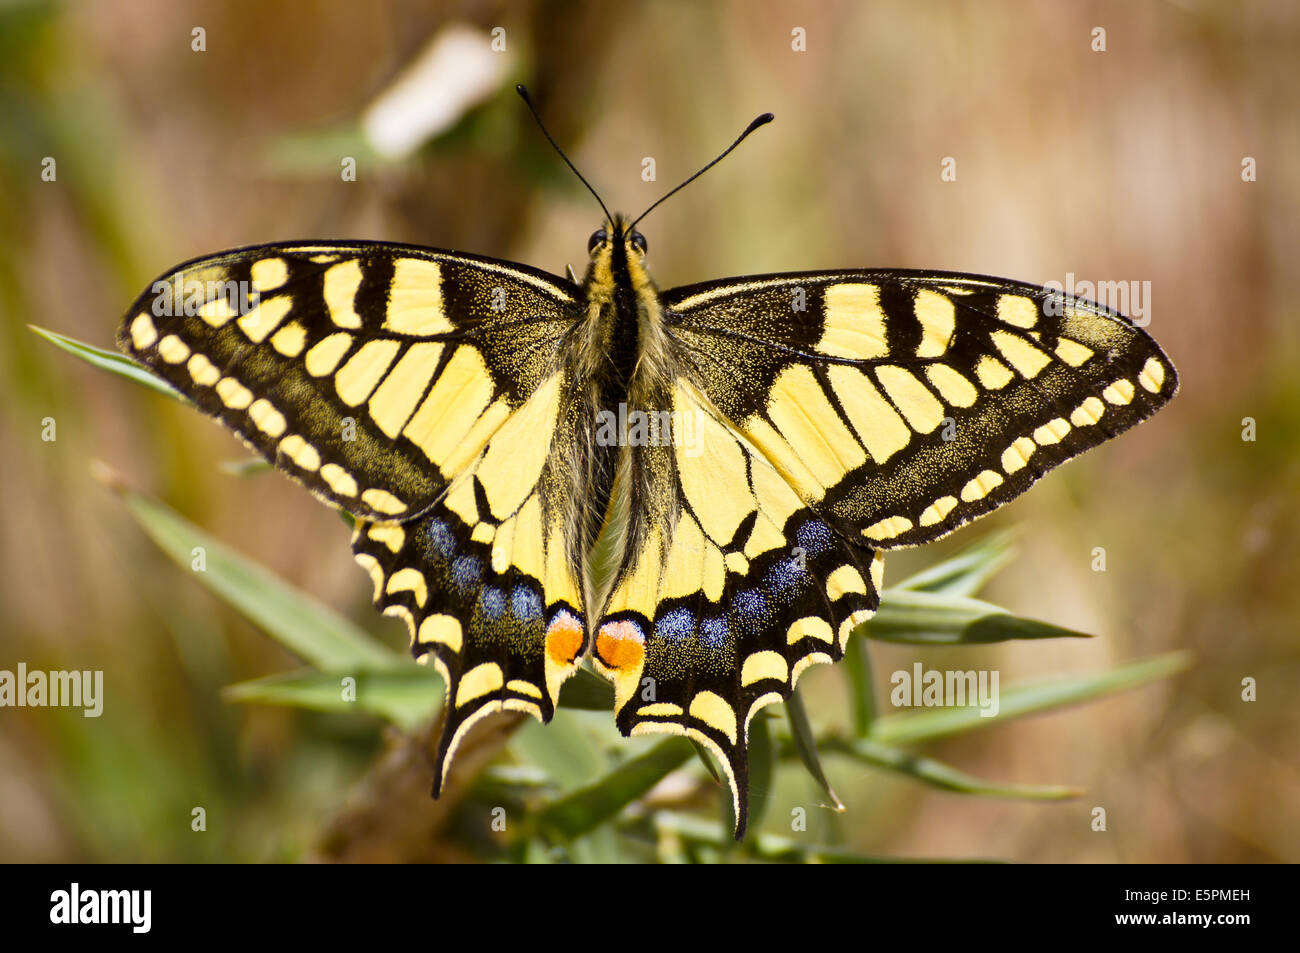 swallowtail-butterfly-papilio-machaon-kos-greece-E5PMEH.jpg